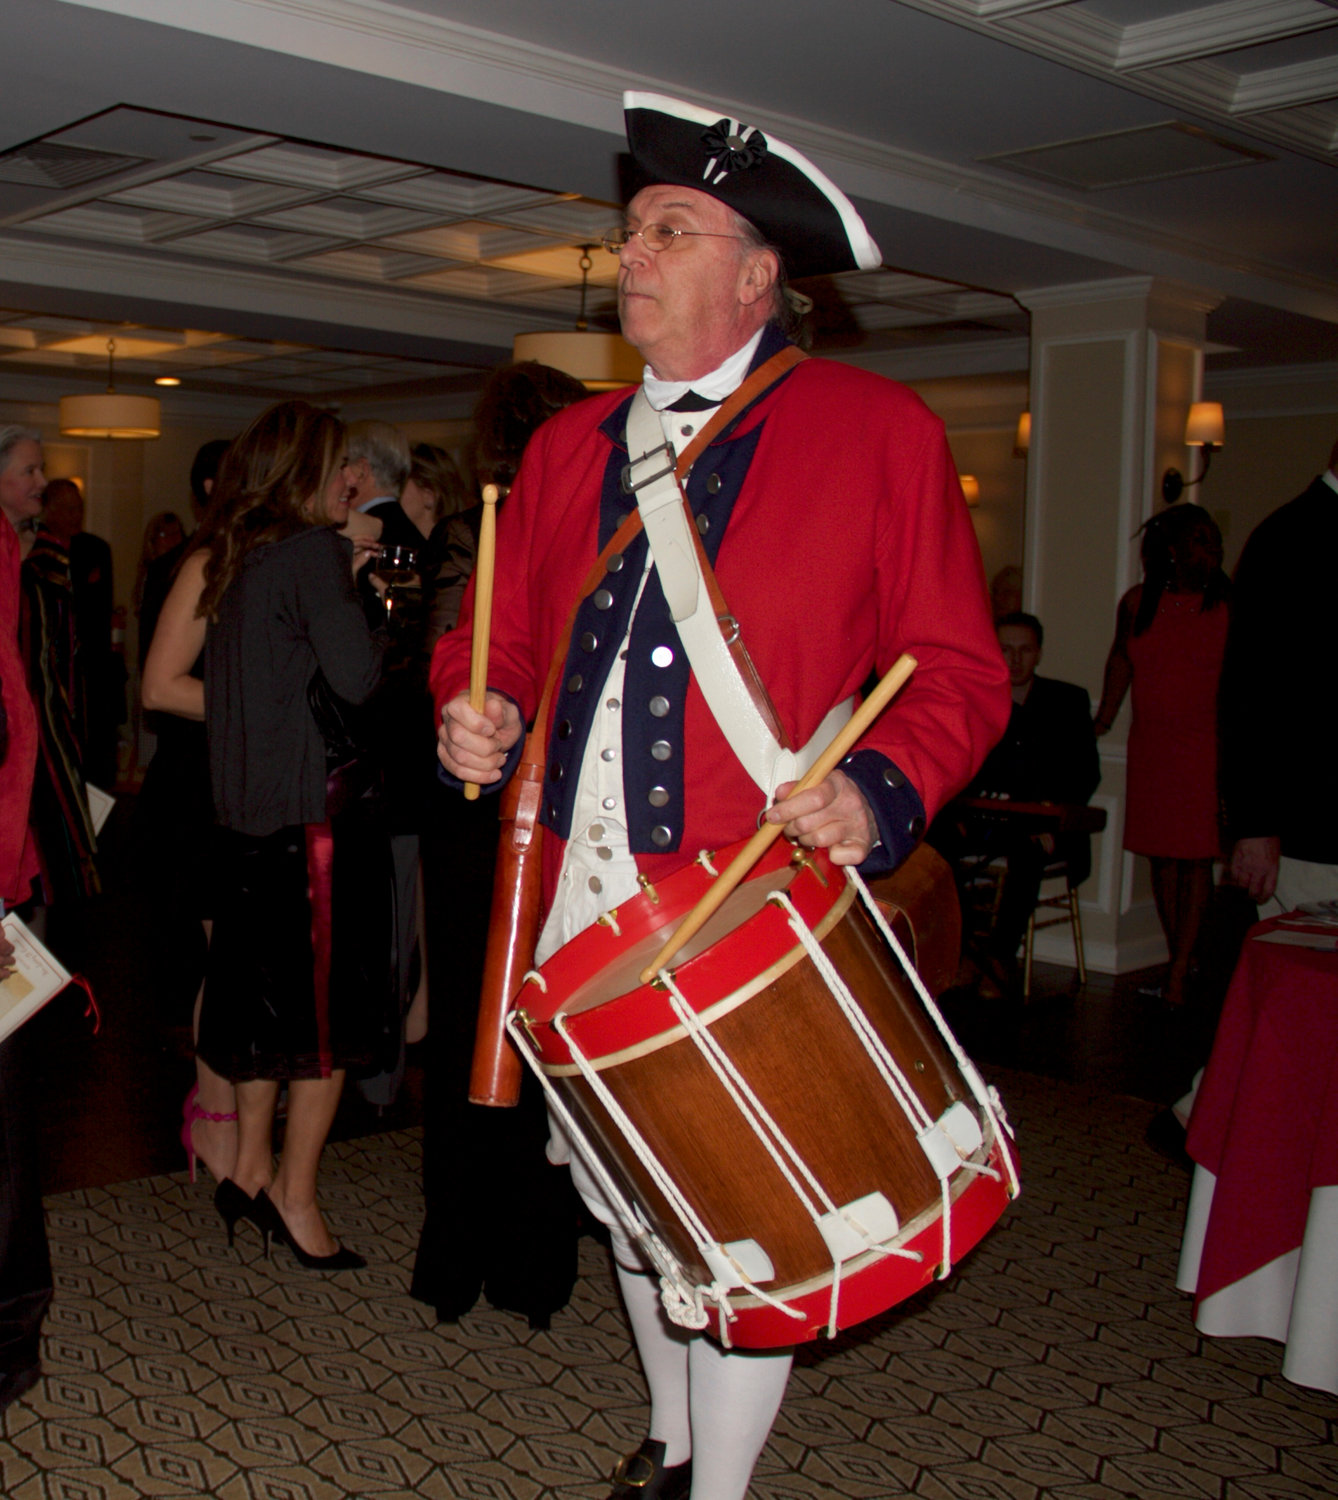 Raynham Hall's Michael Goudket announced, with percussive assistance, that dinner was served.